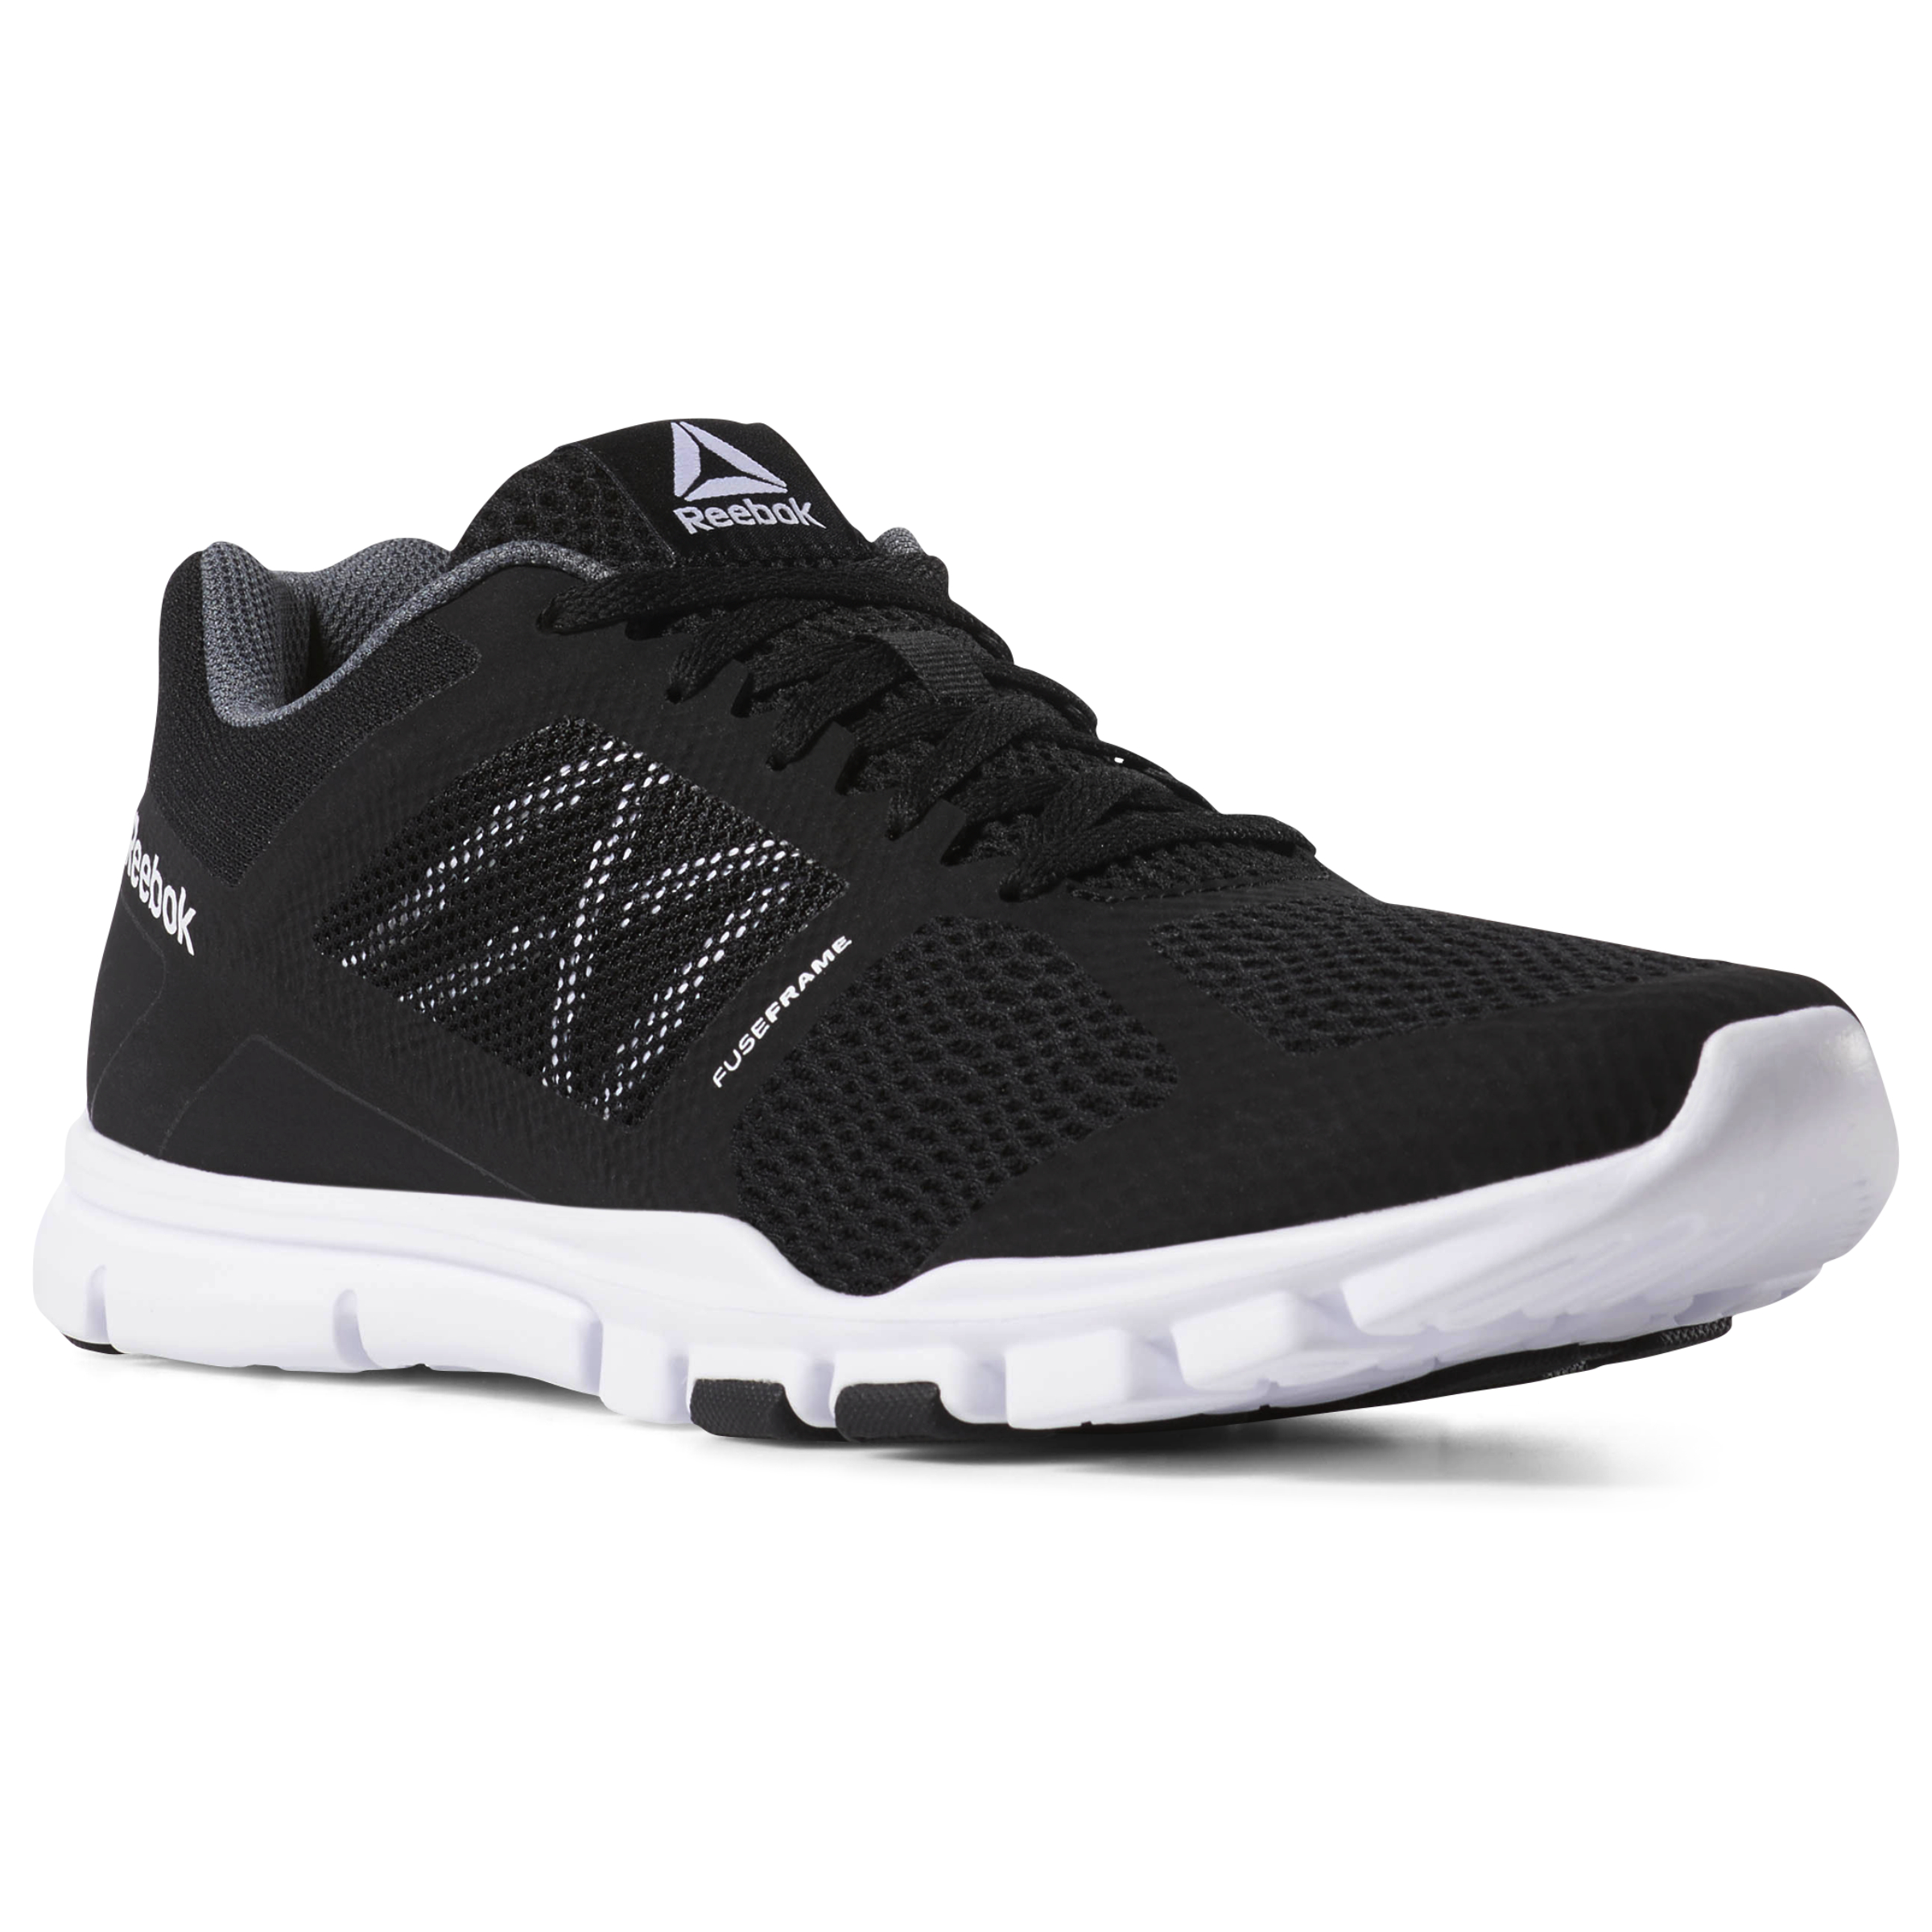 Reebok-Yourflex-Trainette-11-Men-039-s-Training-Shoes thumbnail 10